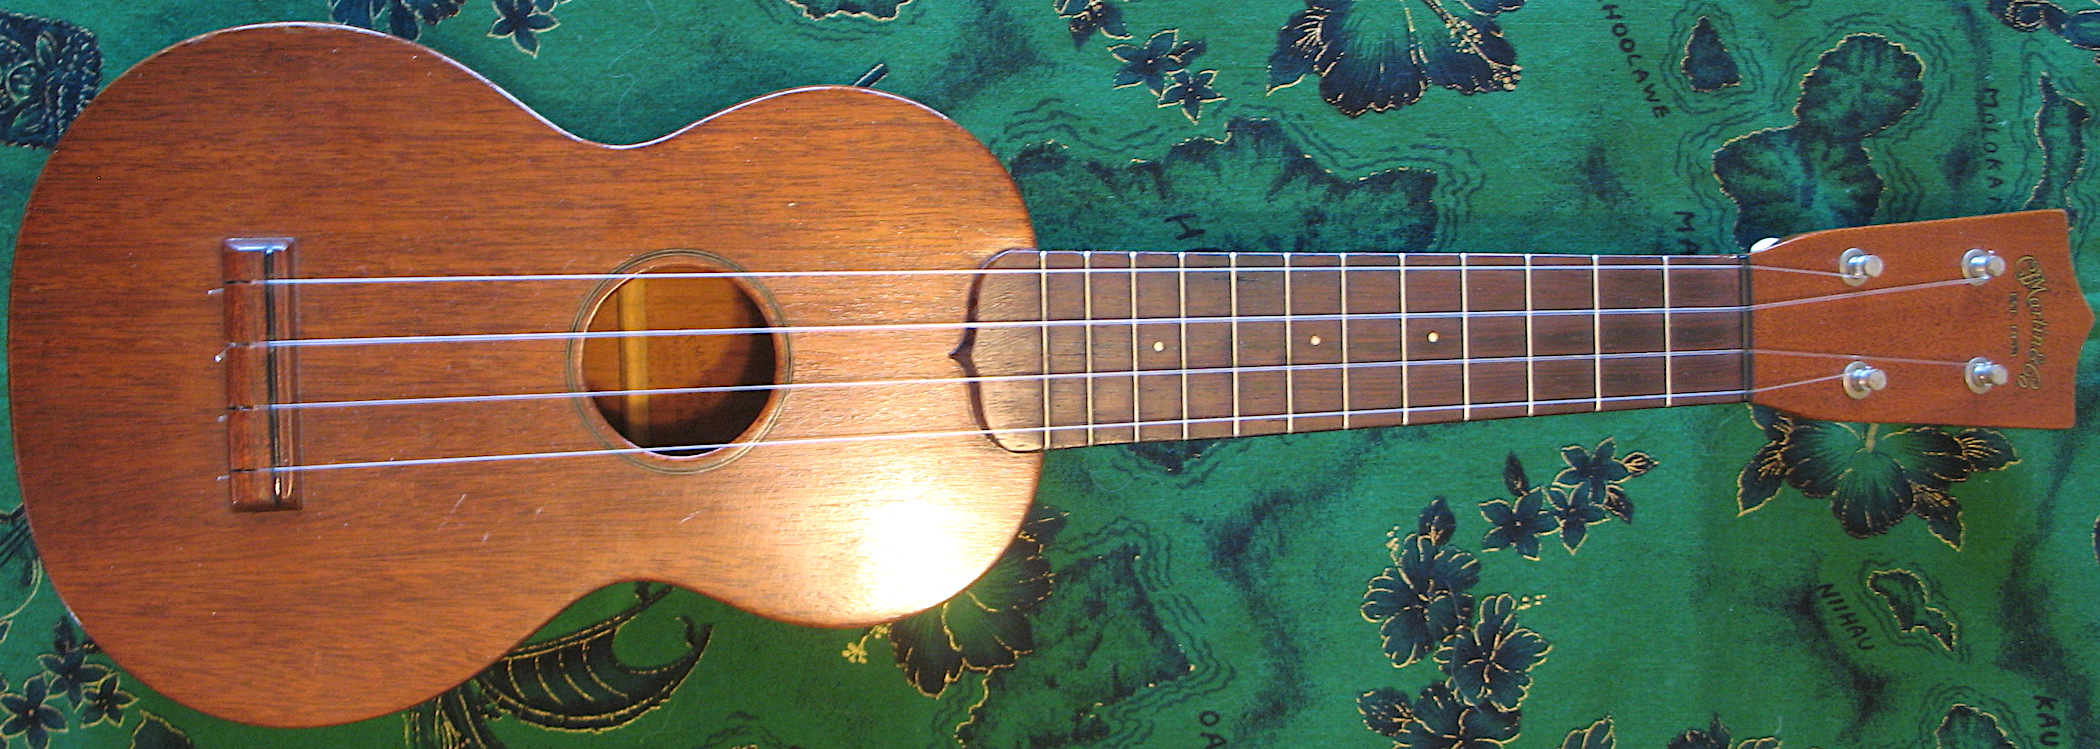 dating vintage martin ukulele